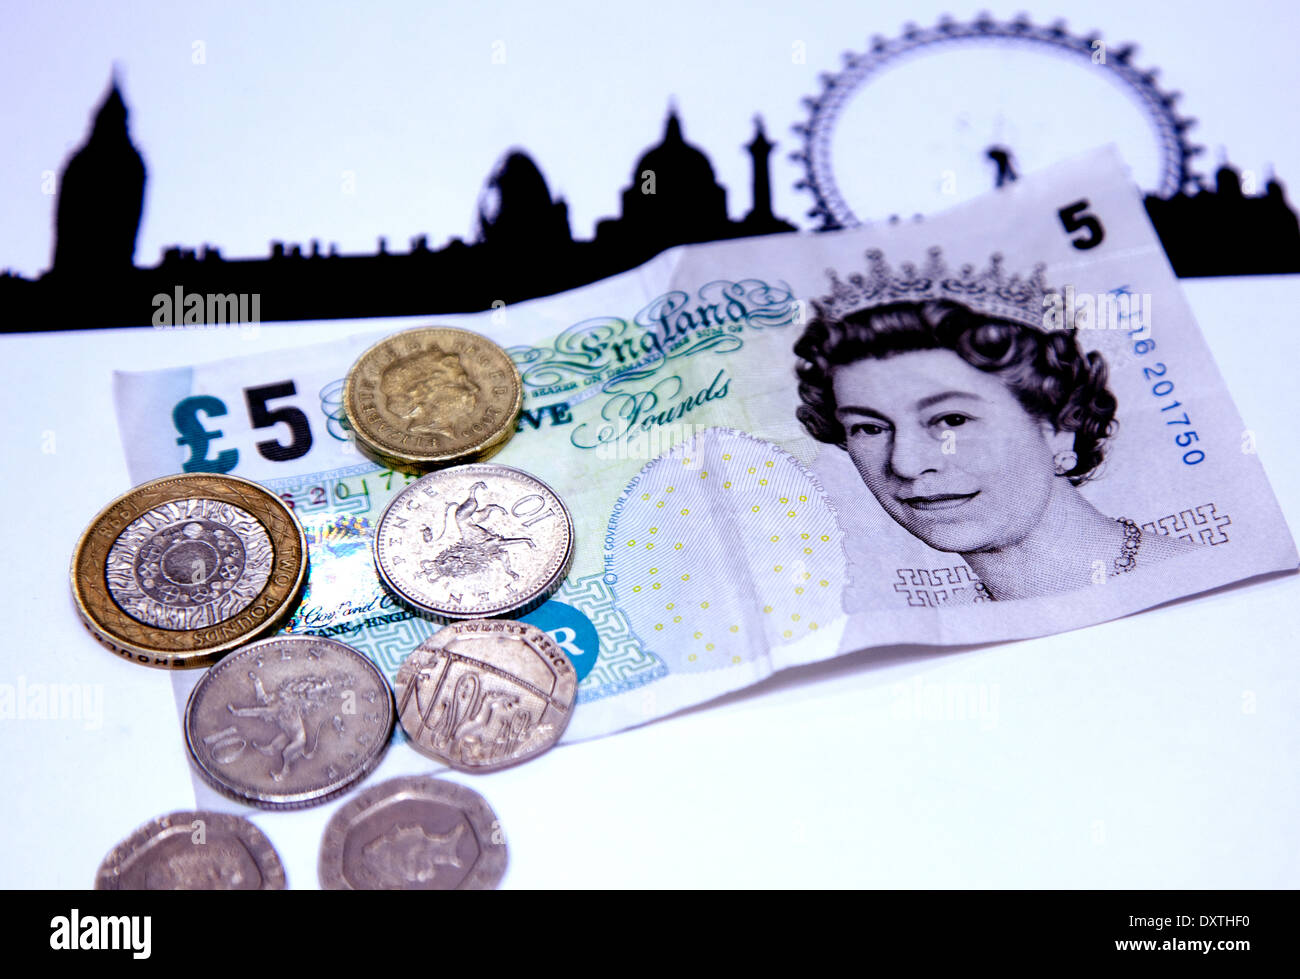 London Living Wage is currently £8.80 per hour (March 2014) - Stock Image